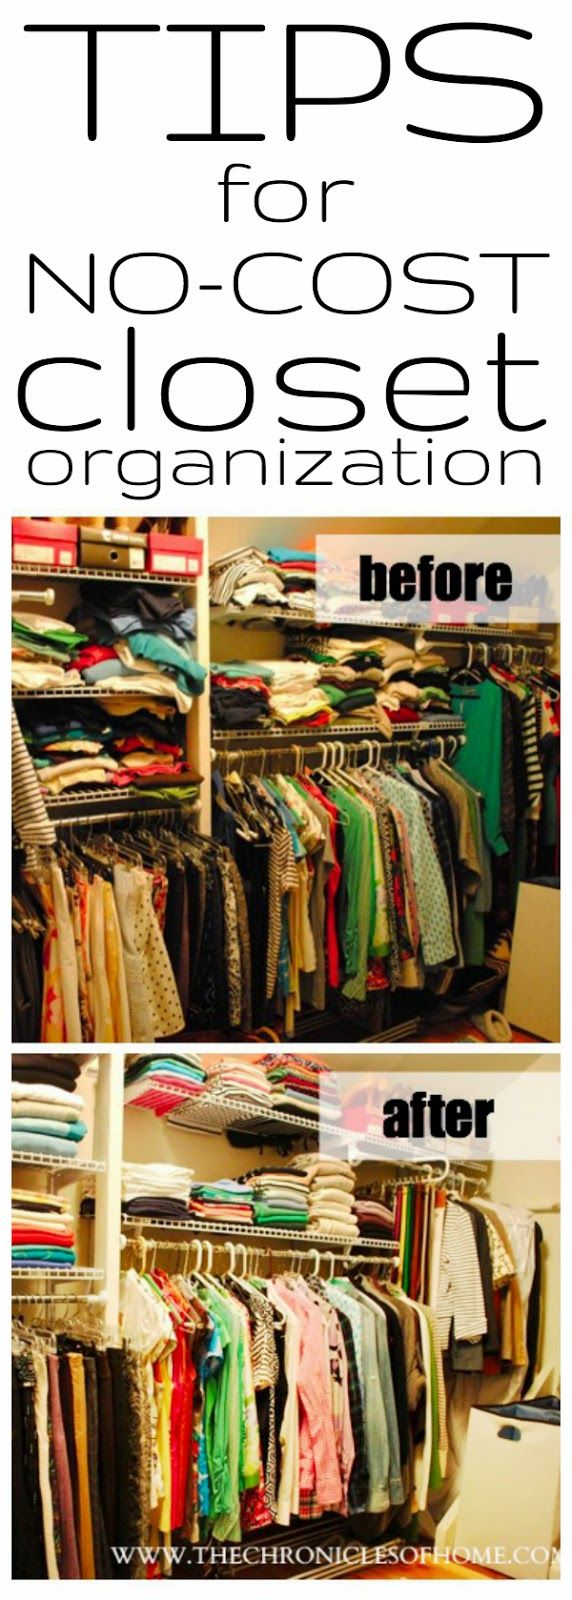 37 best images about organize on pinterest closet How to organize your clothes without a closet